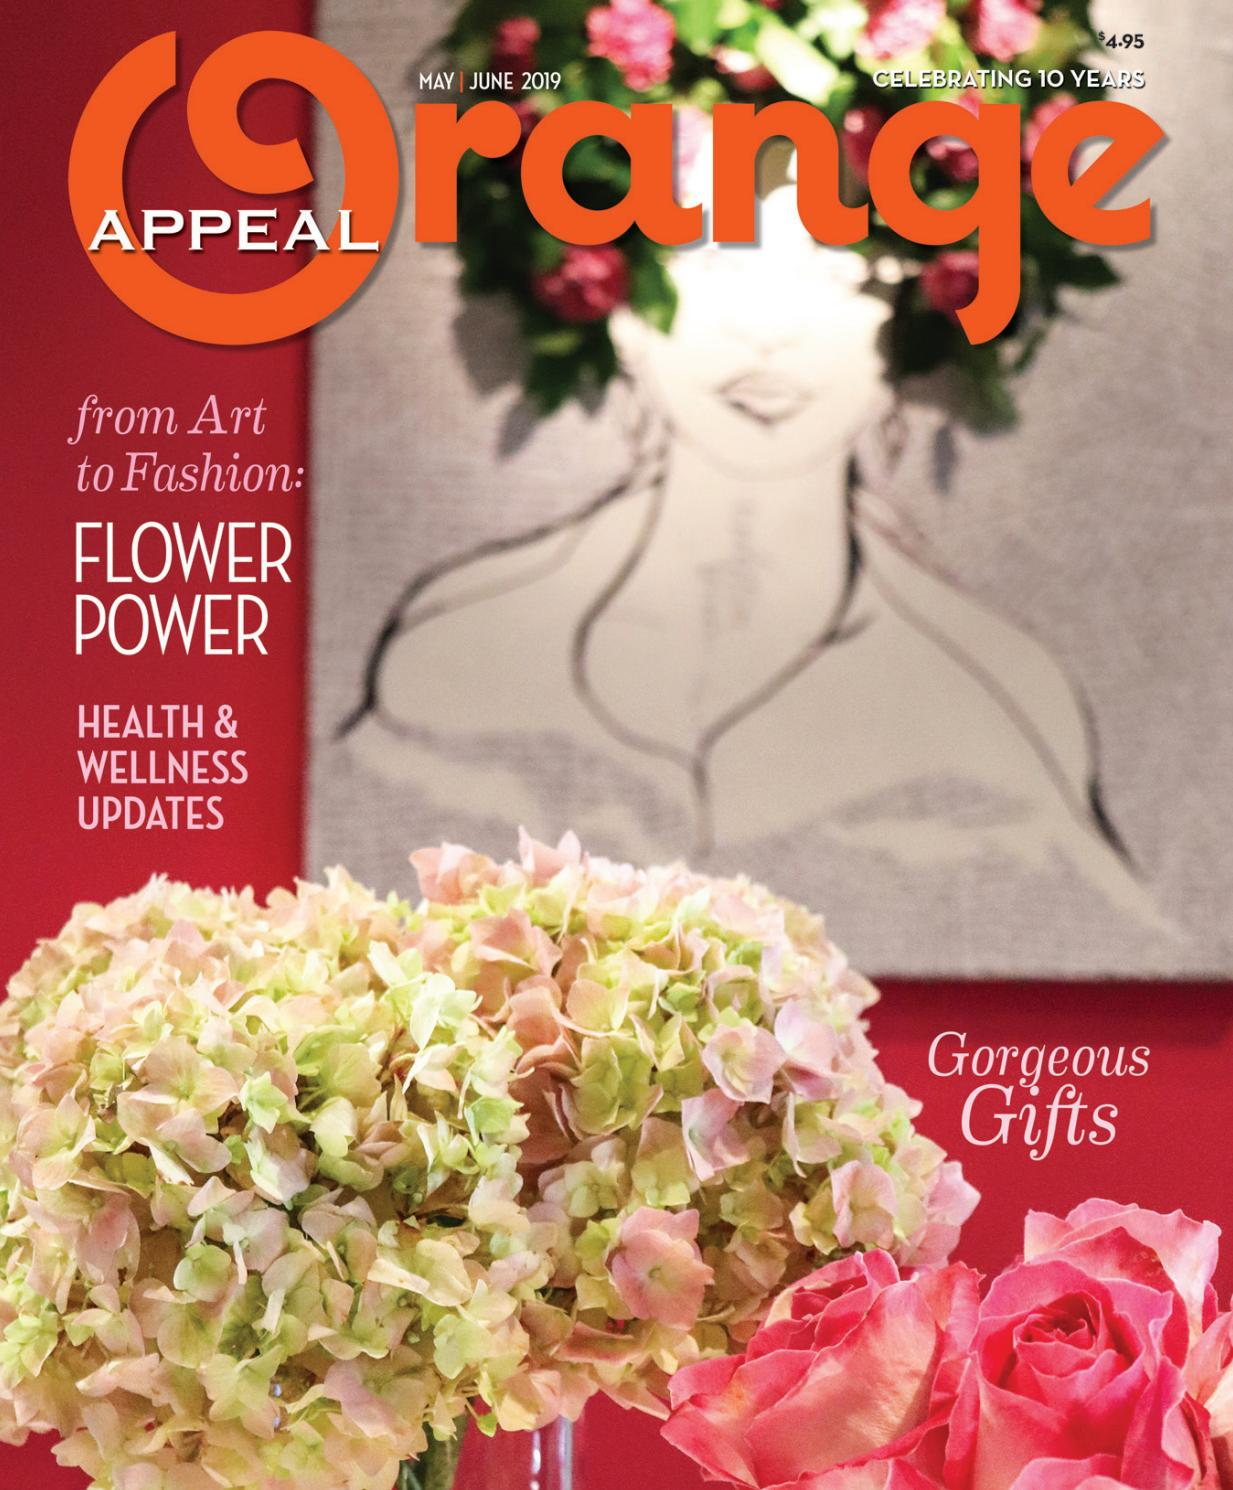 ccd1d40d35 Orange Appeal May/June 2019 by Orange Appeal - issuu